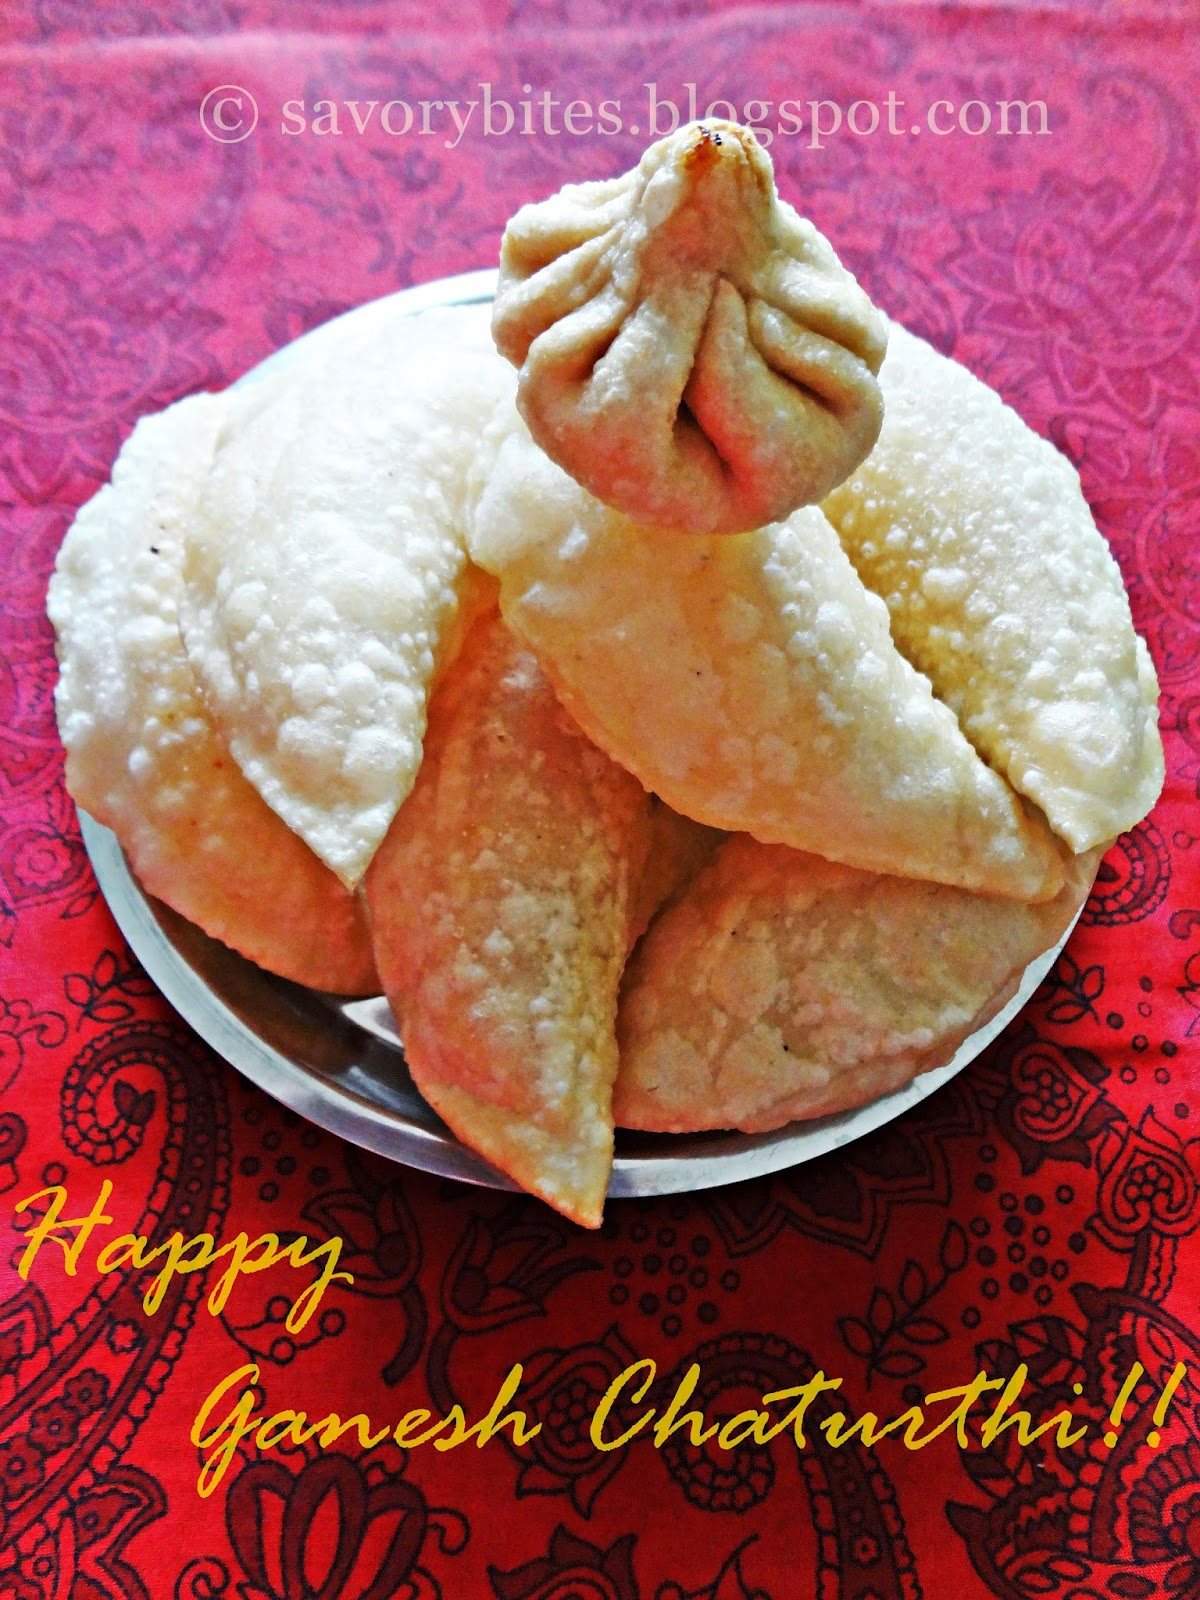 Blogspot Food Blog Ganesh Chaturthi Wishes Savory Bites Recipes A Food